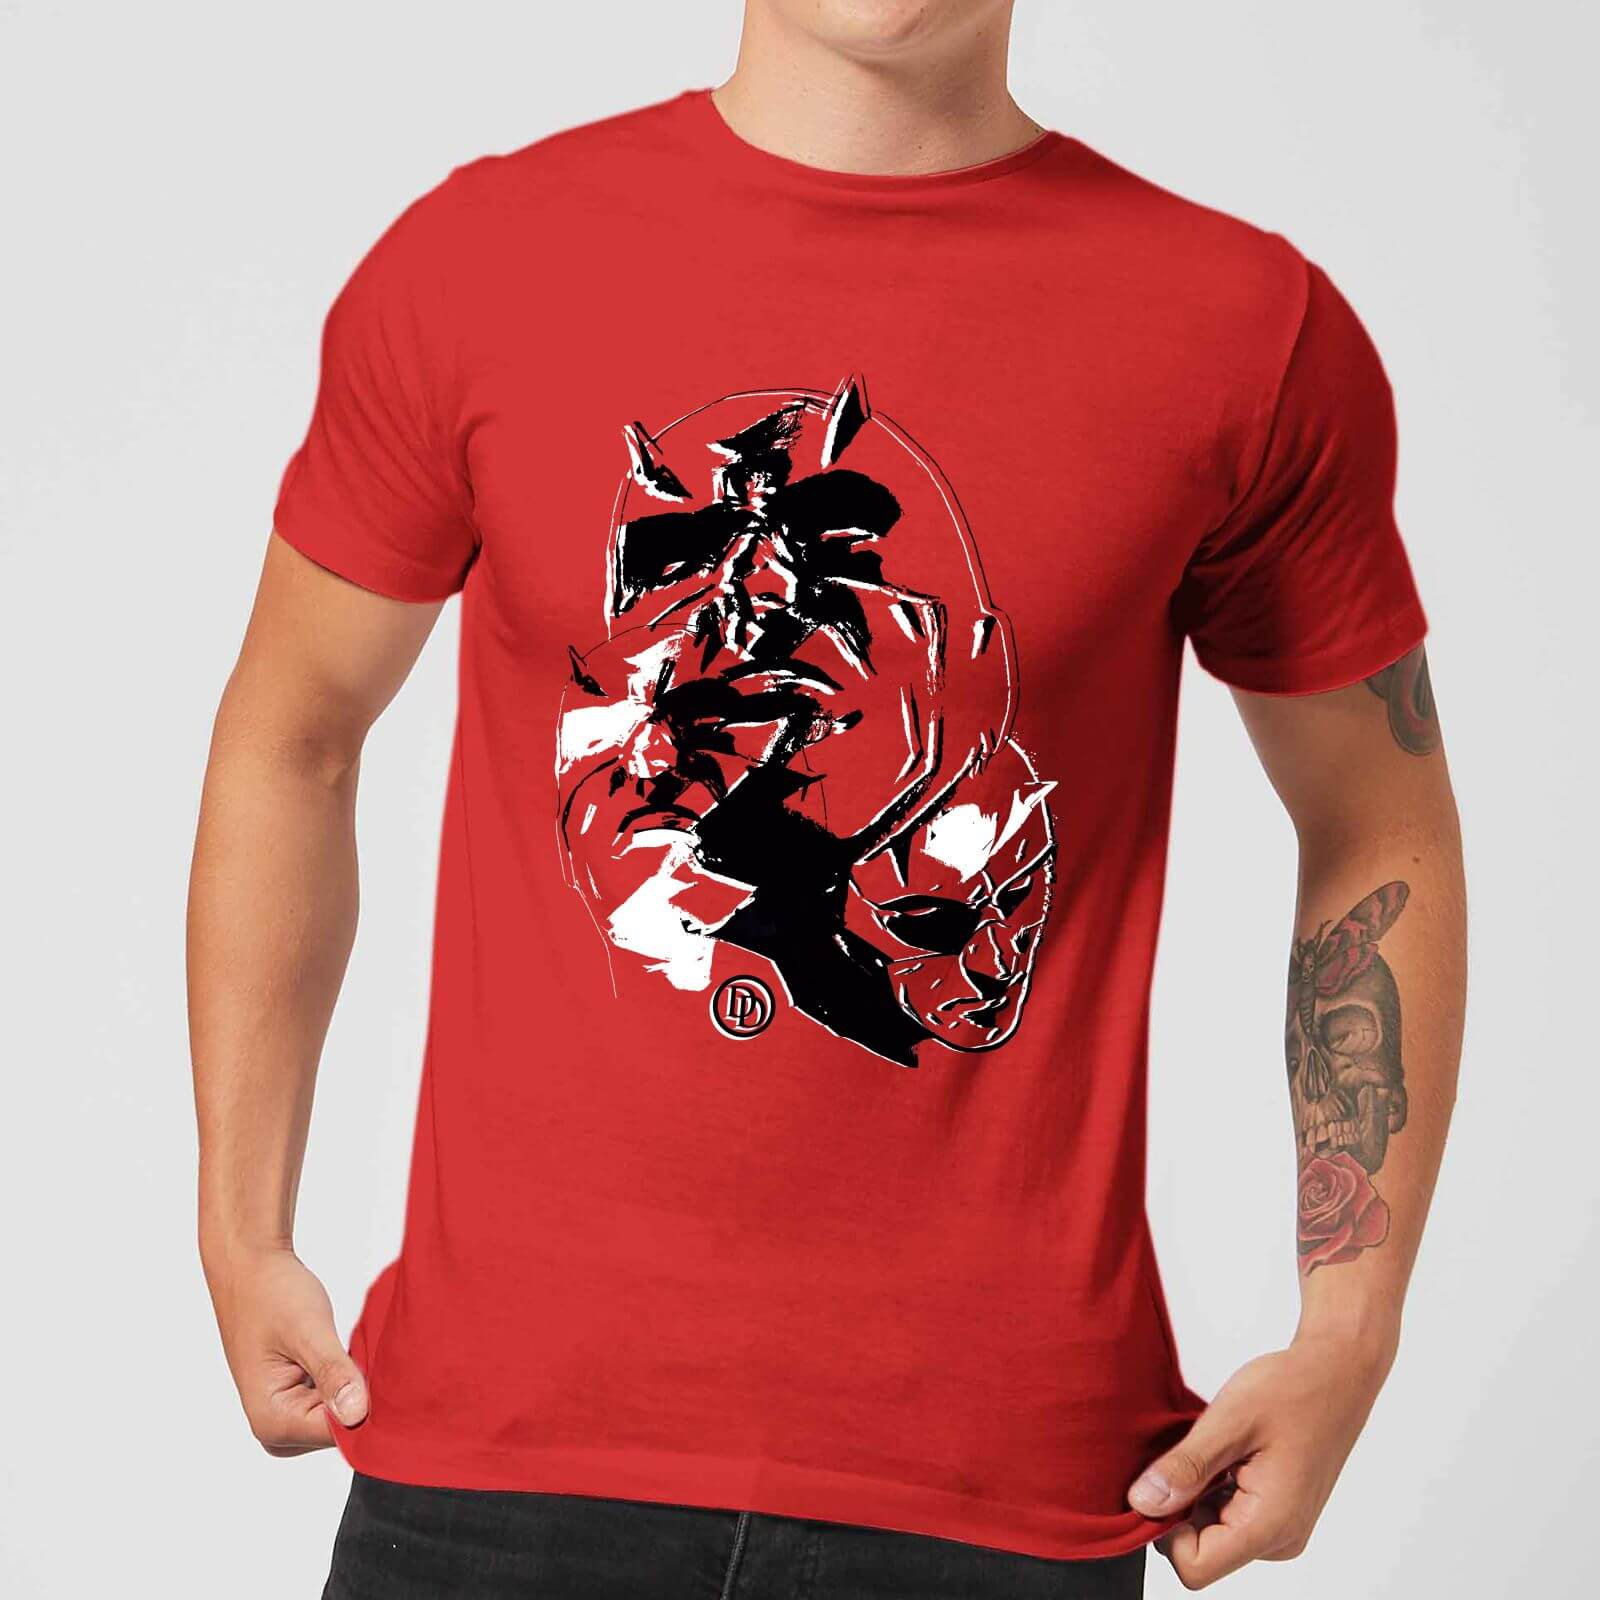 OfferteWeb.click 75-t-shirt-marvel-knights-daredevil-layered-faces-rosso